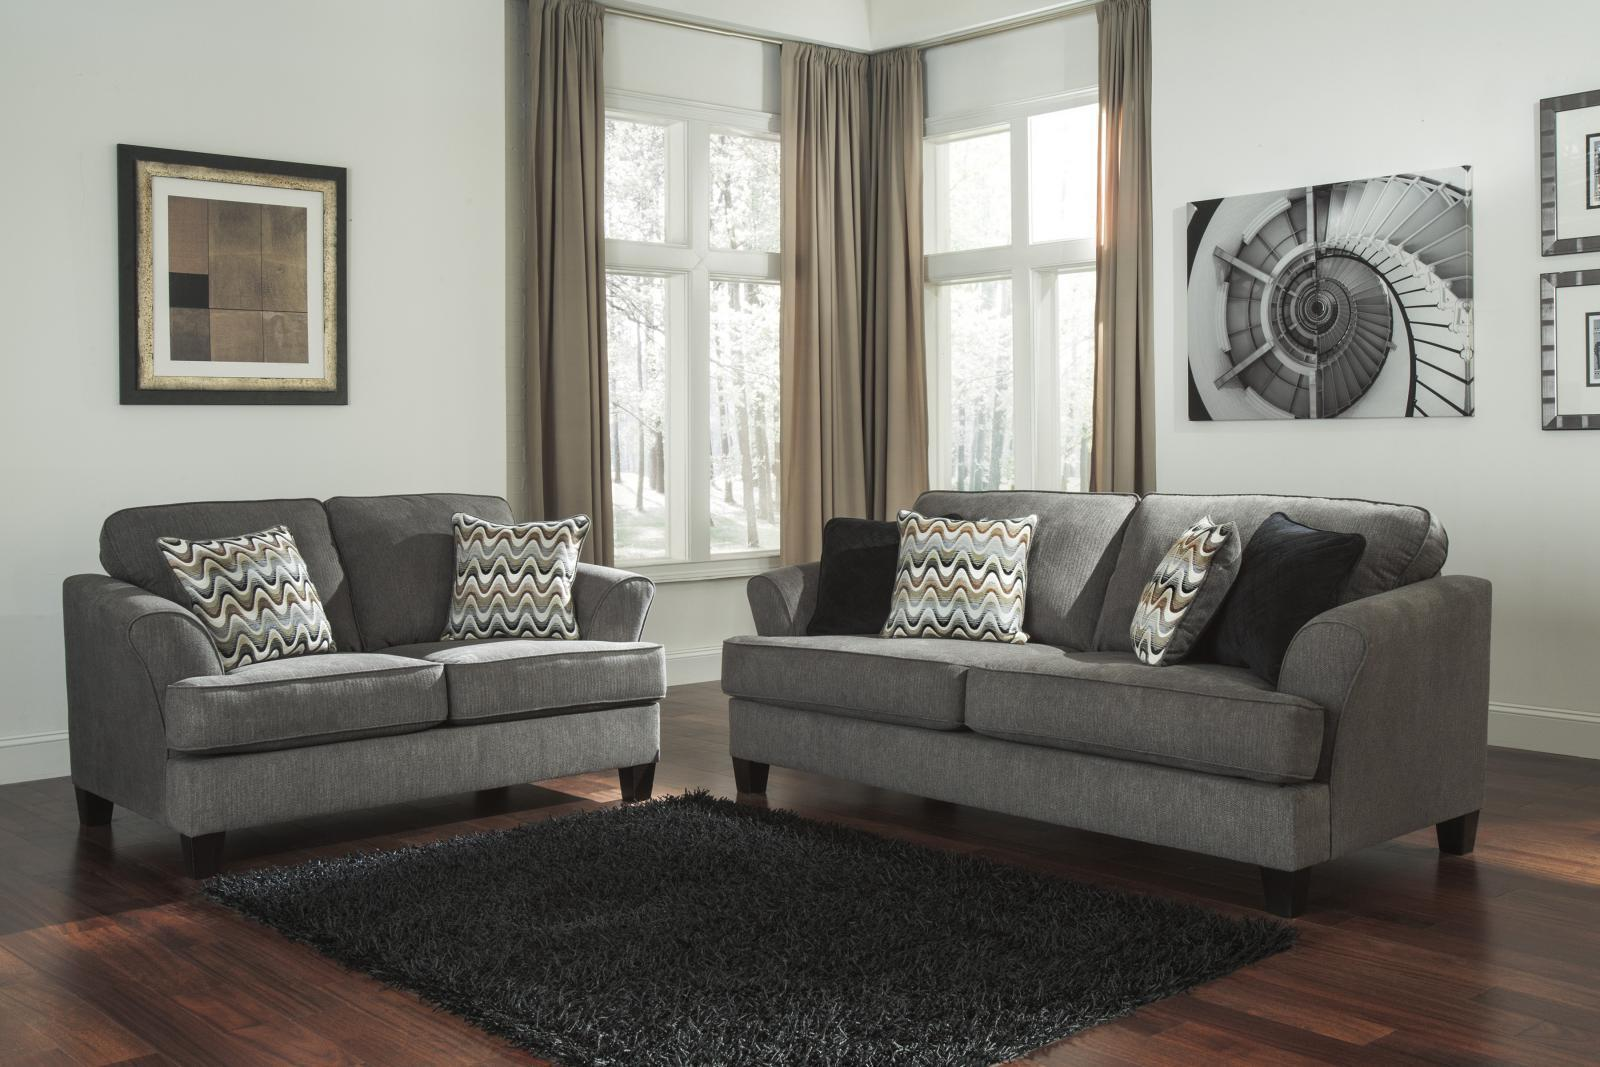 Ashley Gayler Living Room Set 2pcs in Steel Upholstery Fabric Contemporary Style